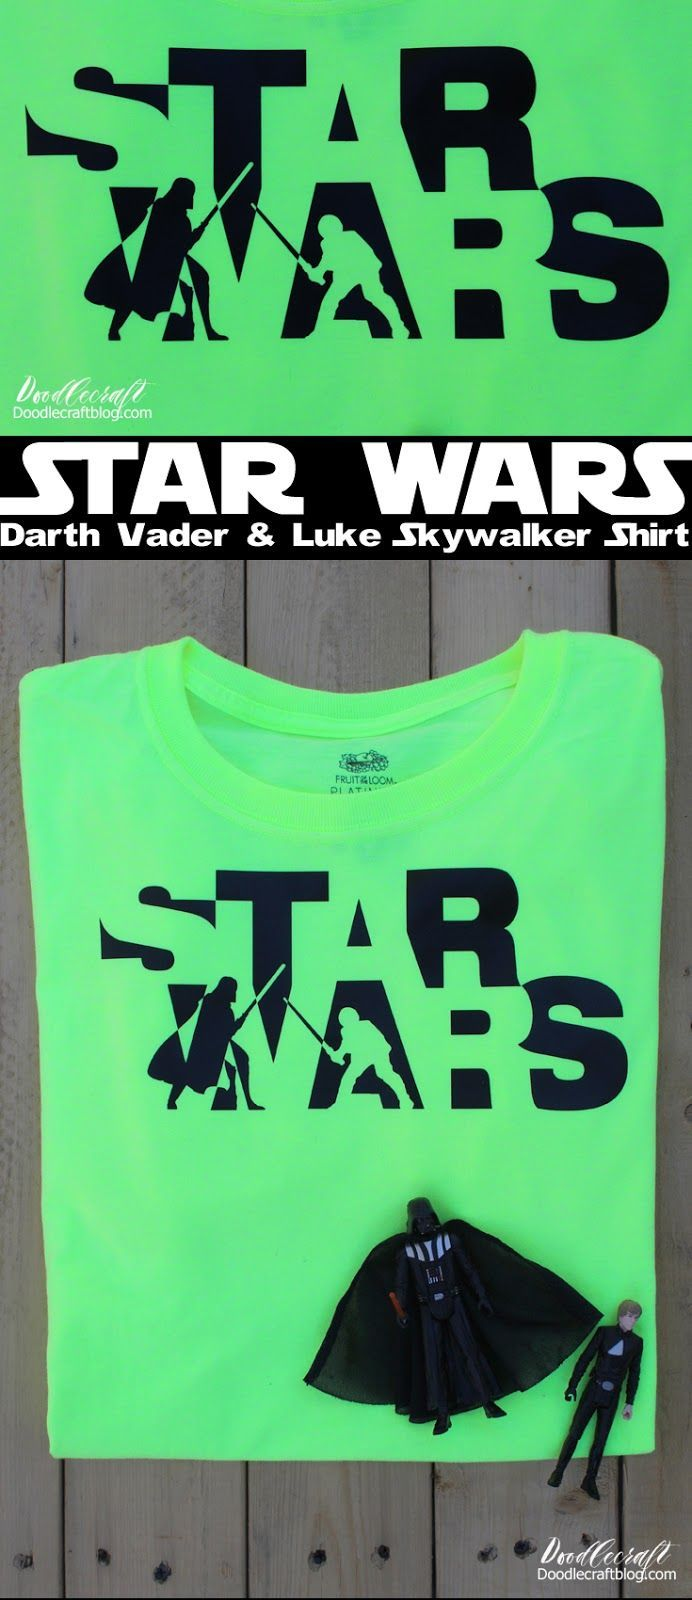 0ac43ec5 Star Wars Darth Vader-Luke Skywalker Battle Iron-On Vinyl DIY Shirt ...